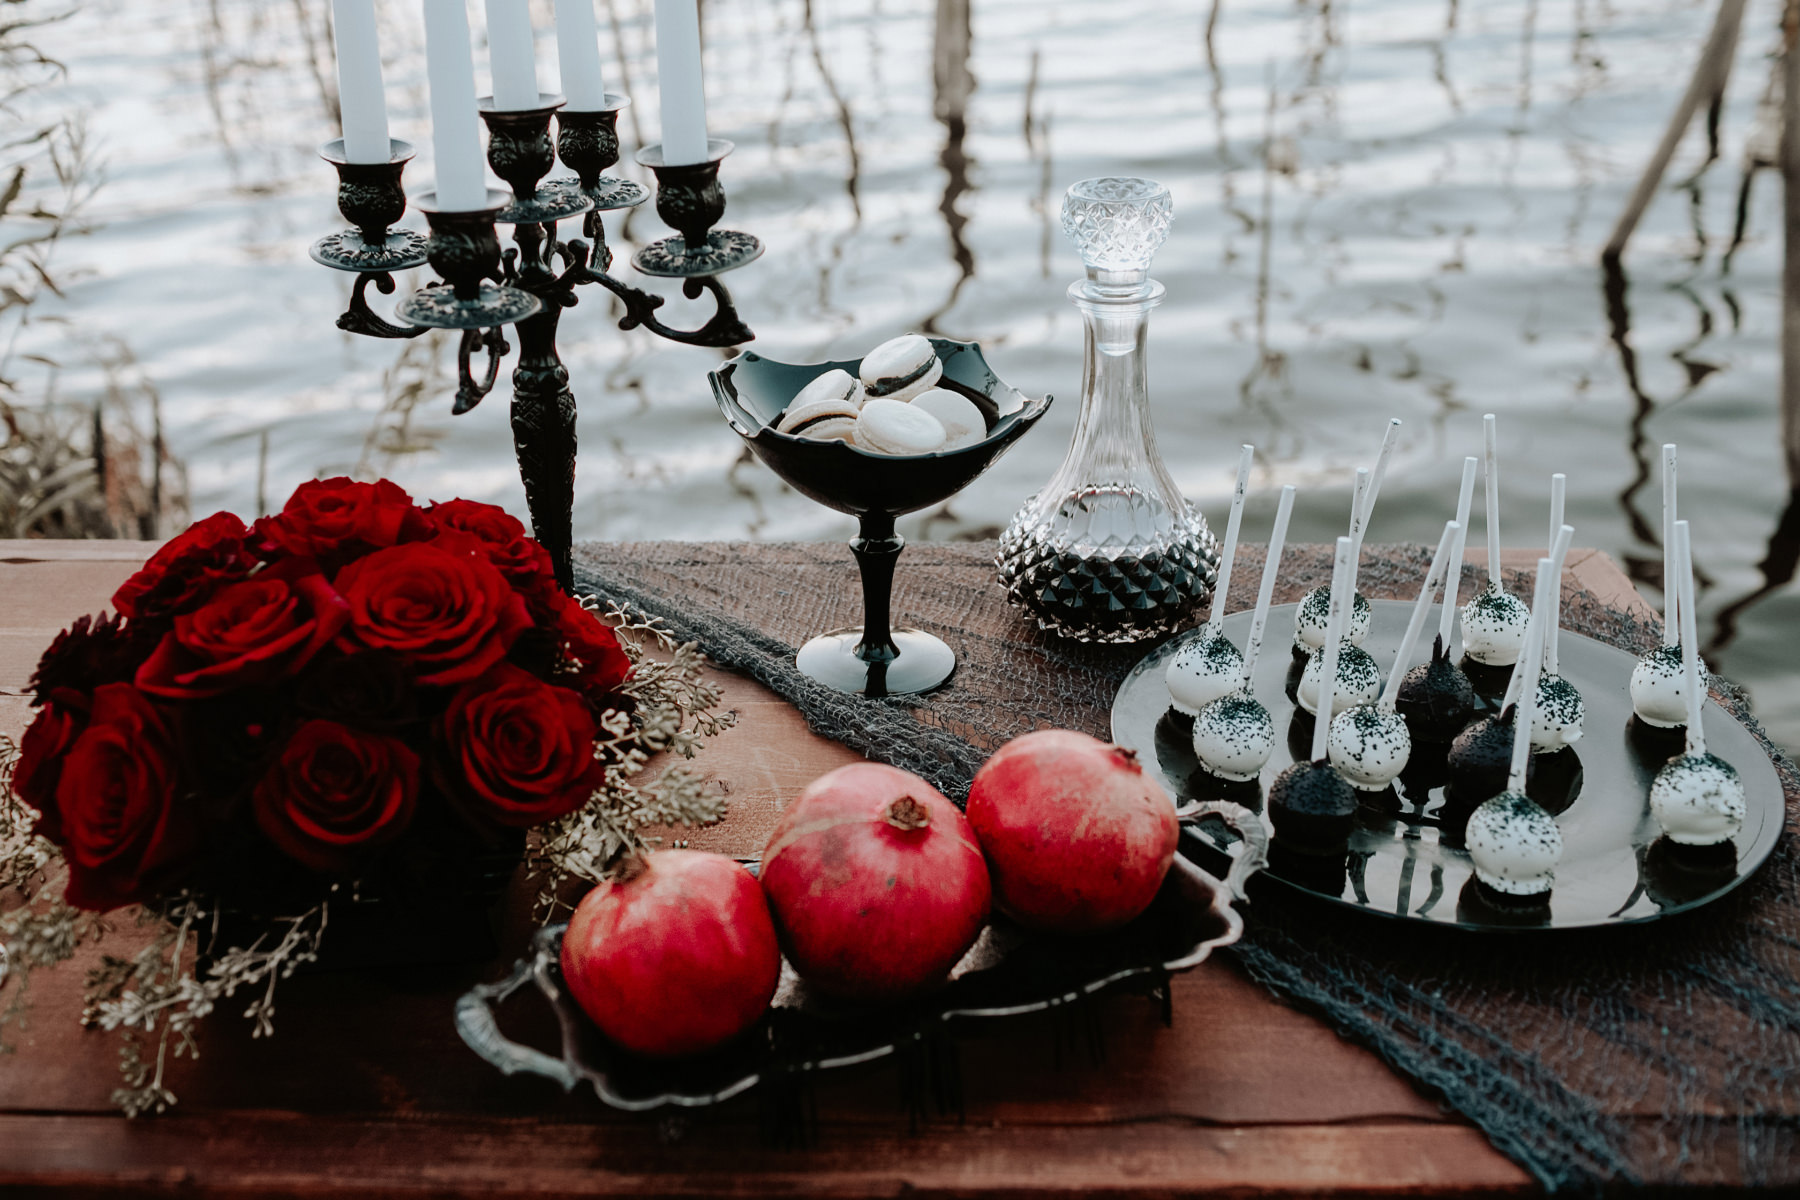 Halloween tablescape featuring pomegranates and dark cake pops